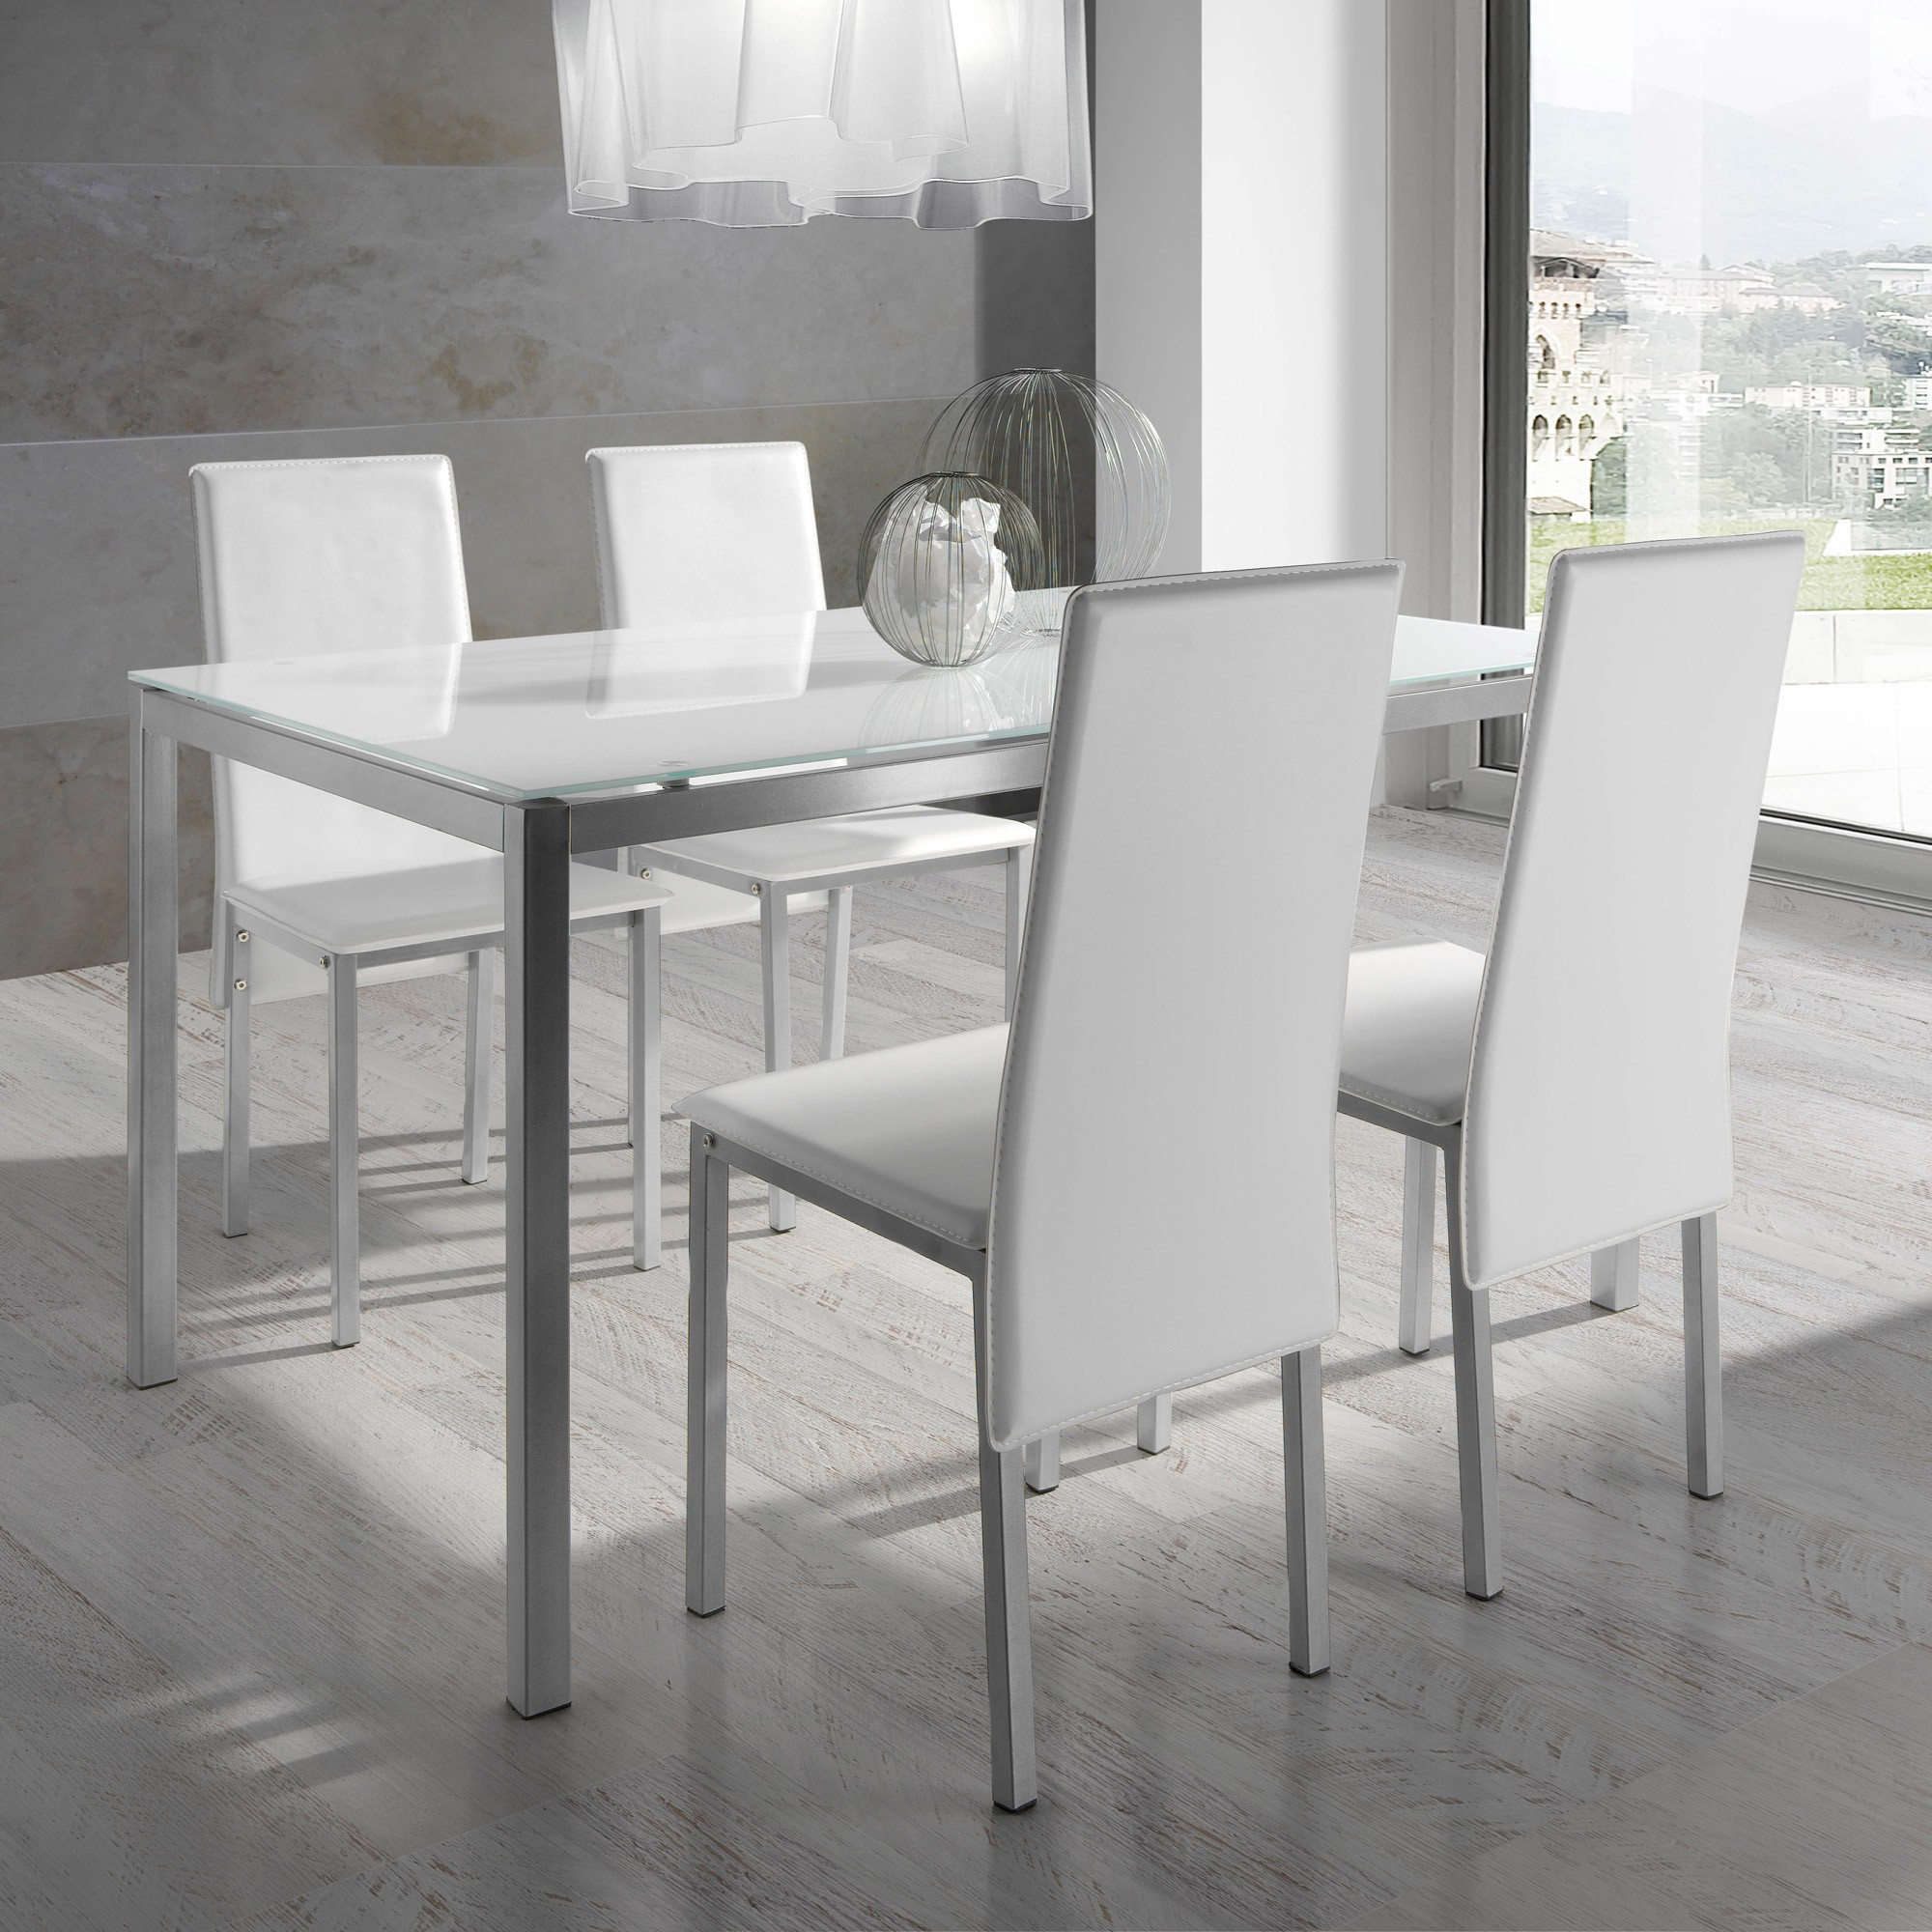 Ensemble table et chaise salle a manger but chaise for Ensemble table chaise salle a manger